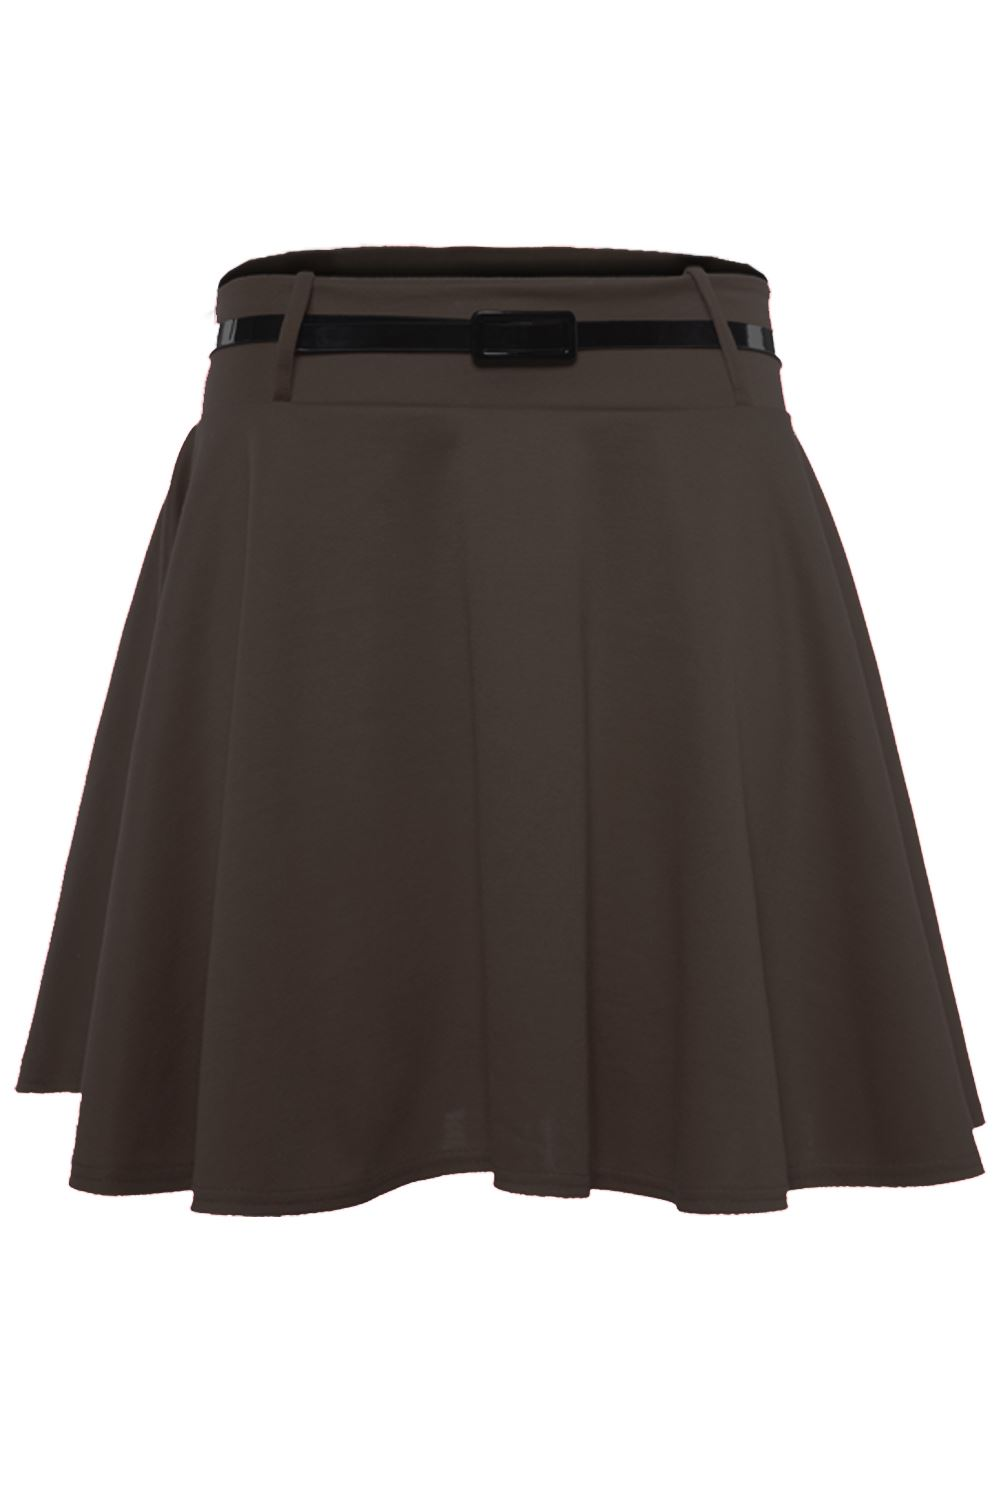 Ladies Womens Belted Skater Flared Flippy Jersey Sexy Party Plain Mini Skirt